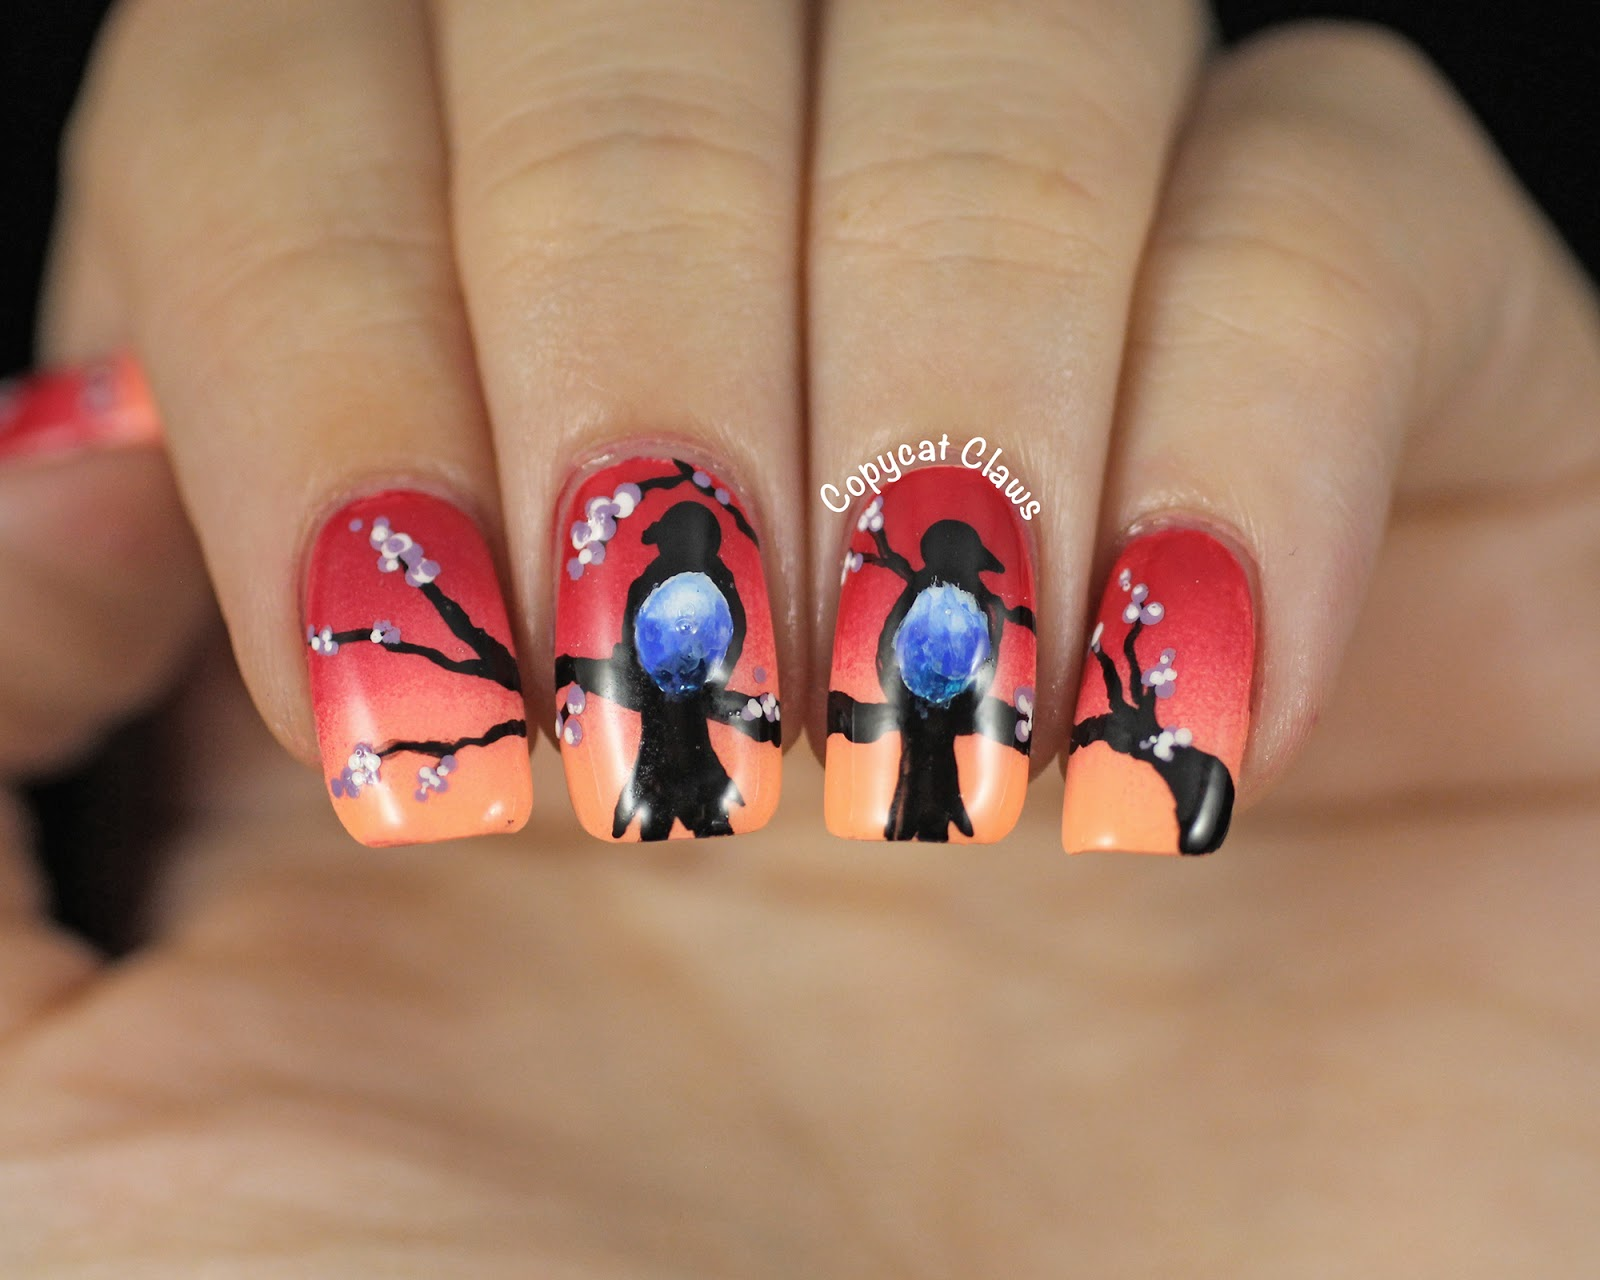 Copycat Claws: 31DC2014 Day 27 - Inspired by artwork